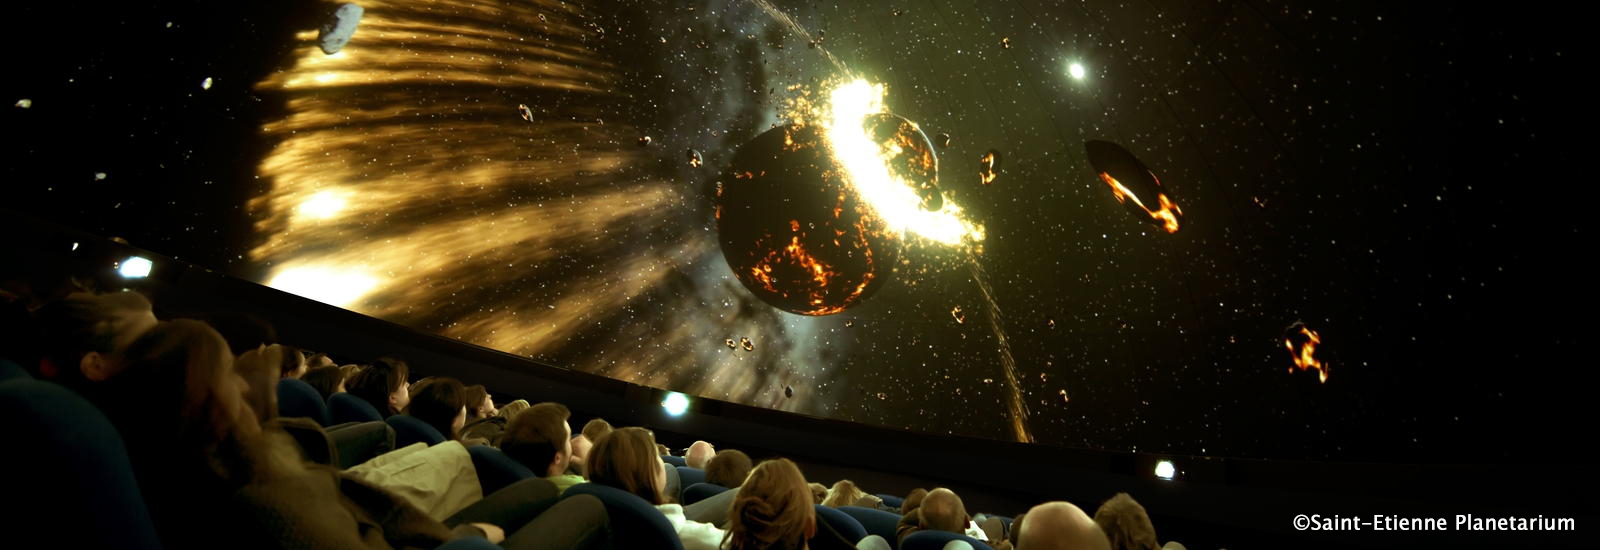 Planetariums: An Outstanding Journey Through the Universe